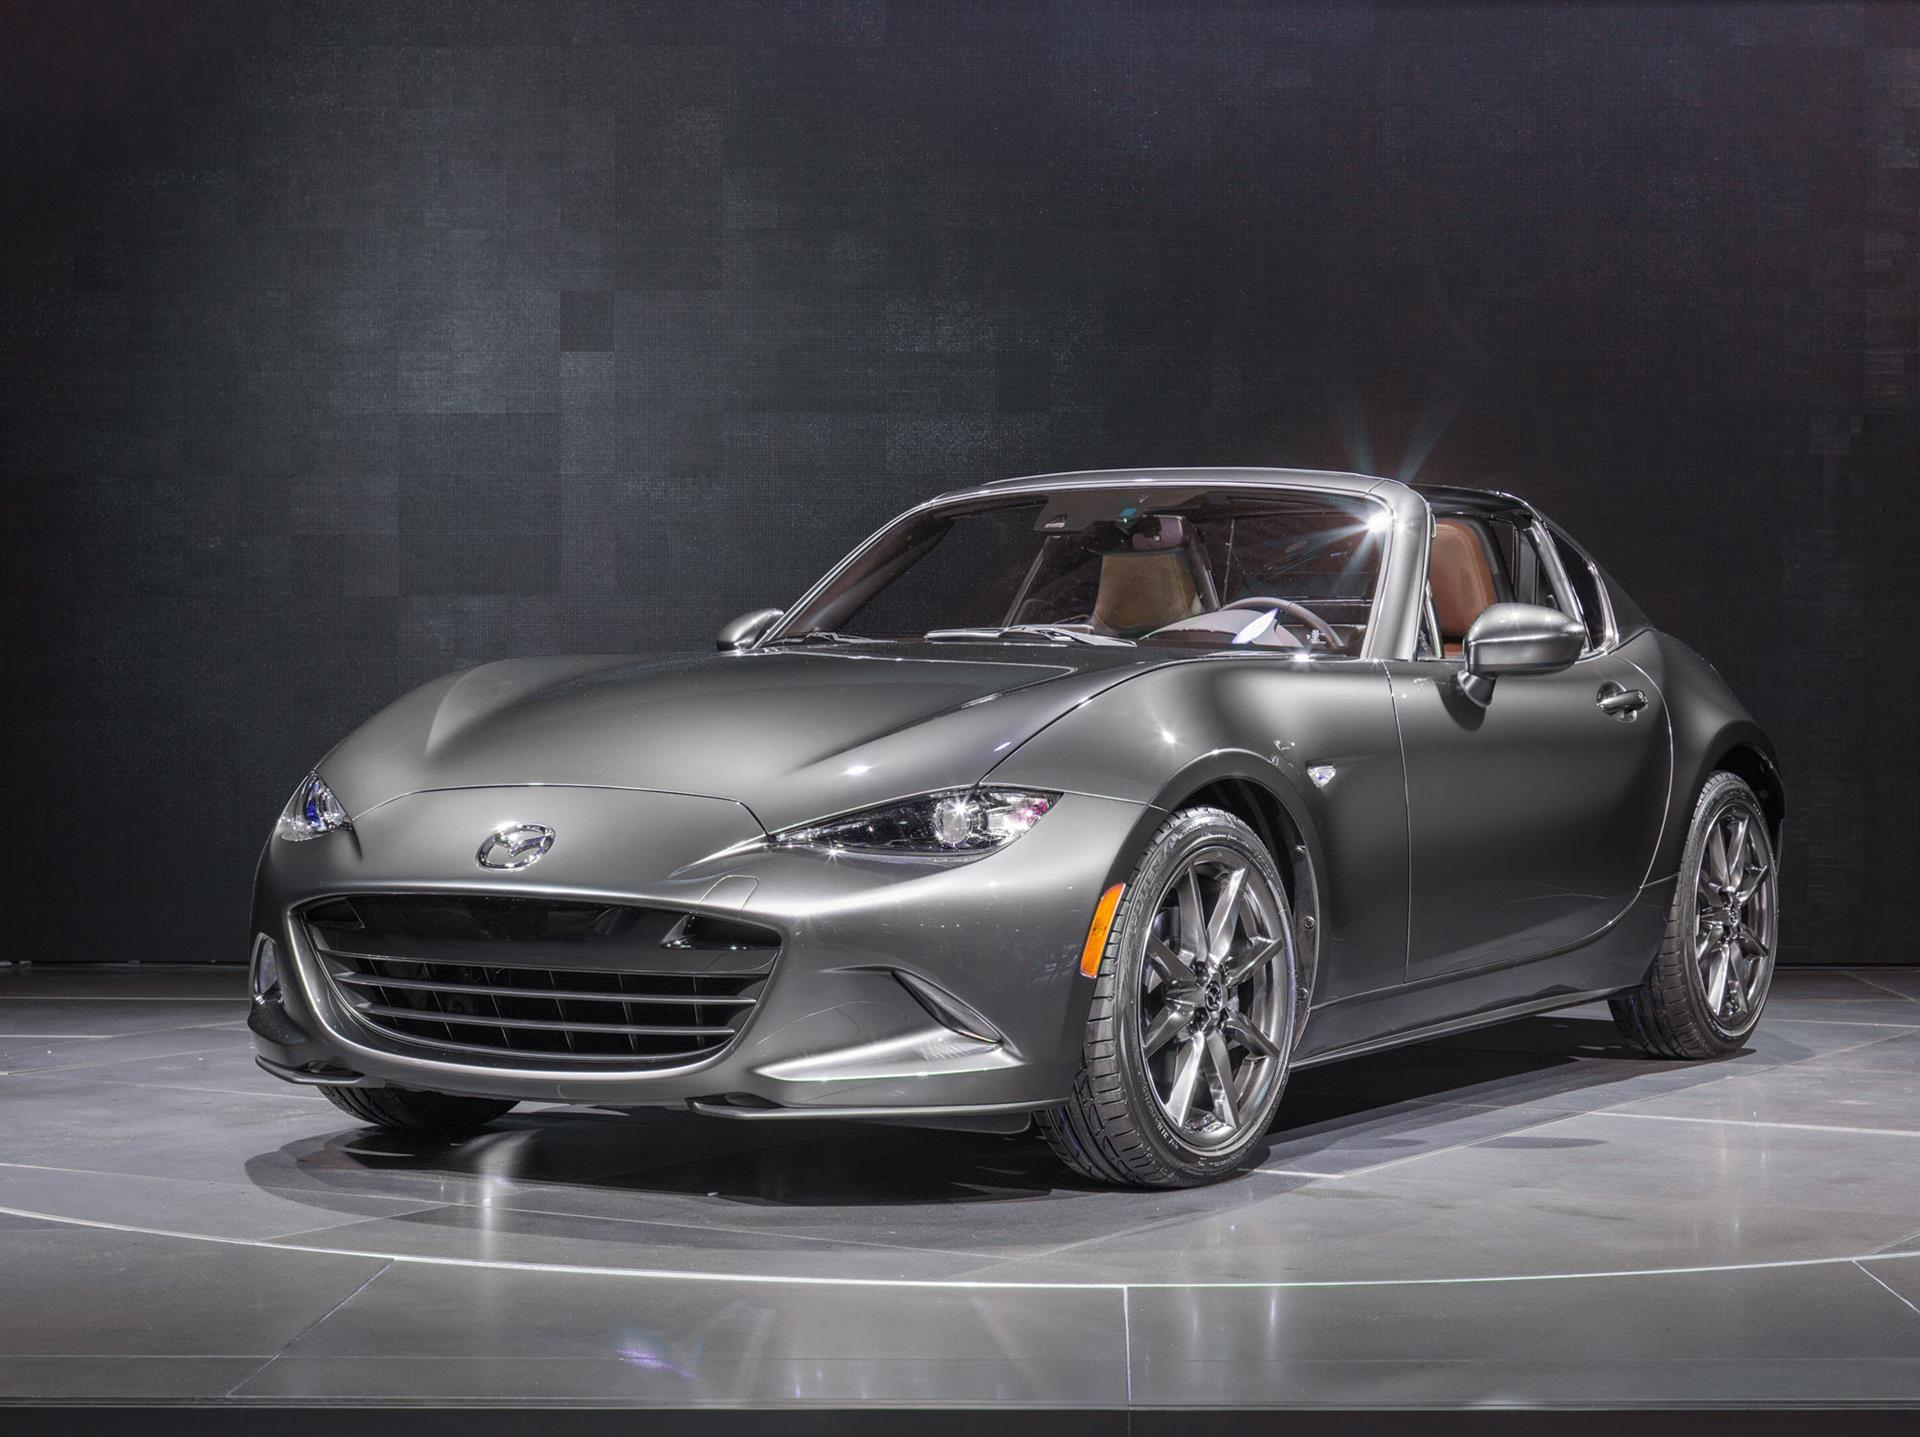 Sure it is the best looking Miata ever created, but at that price? No, just no.